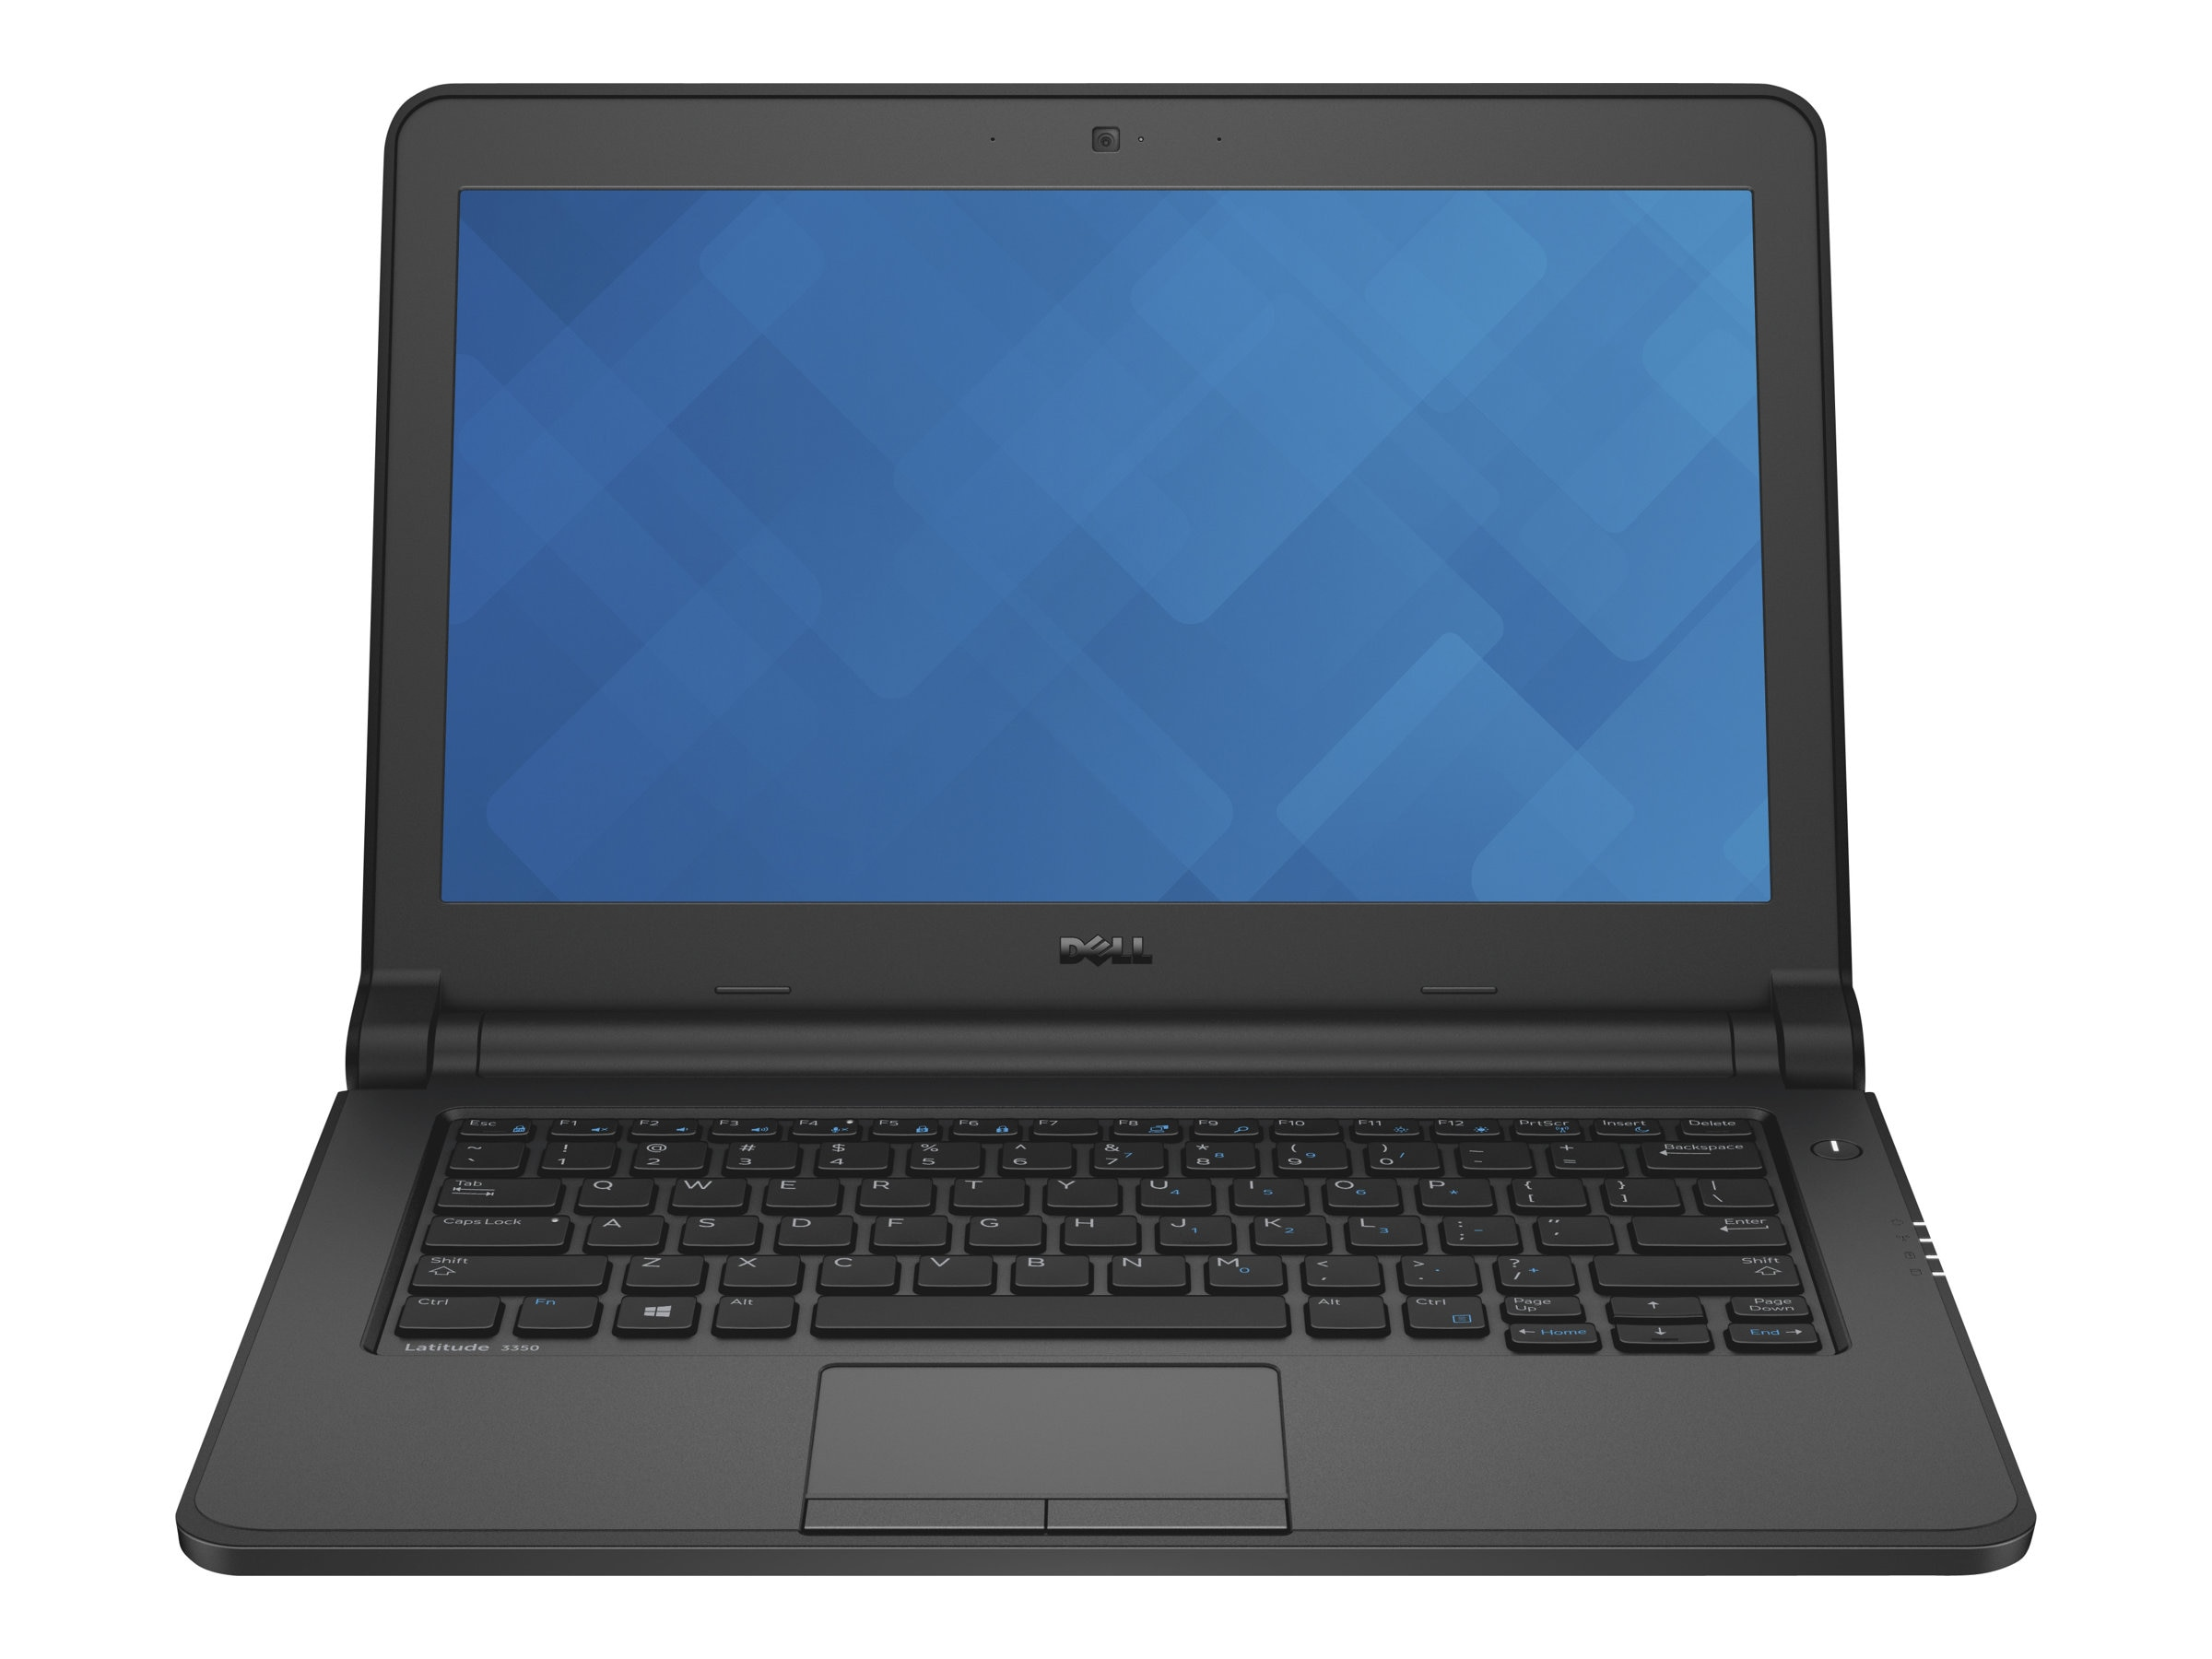 Dell WD5D5 Image 2